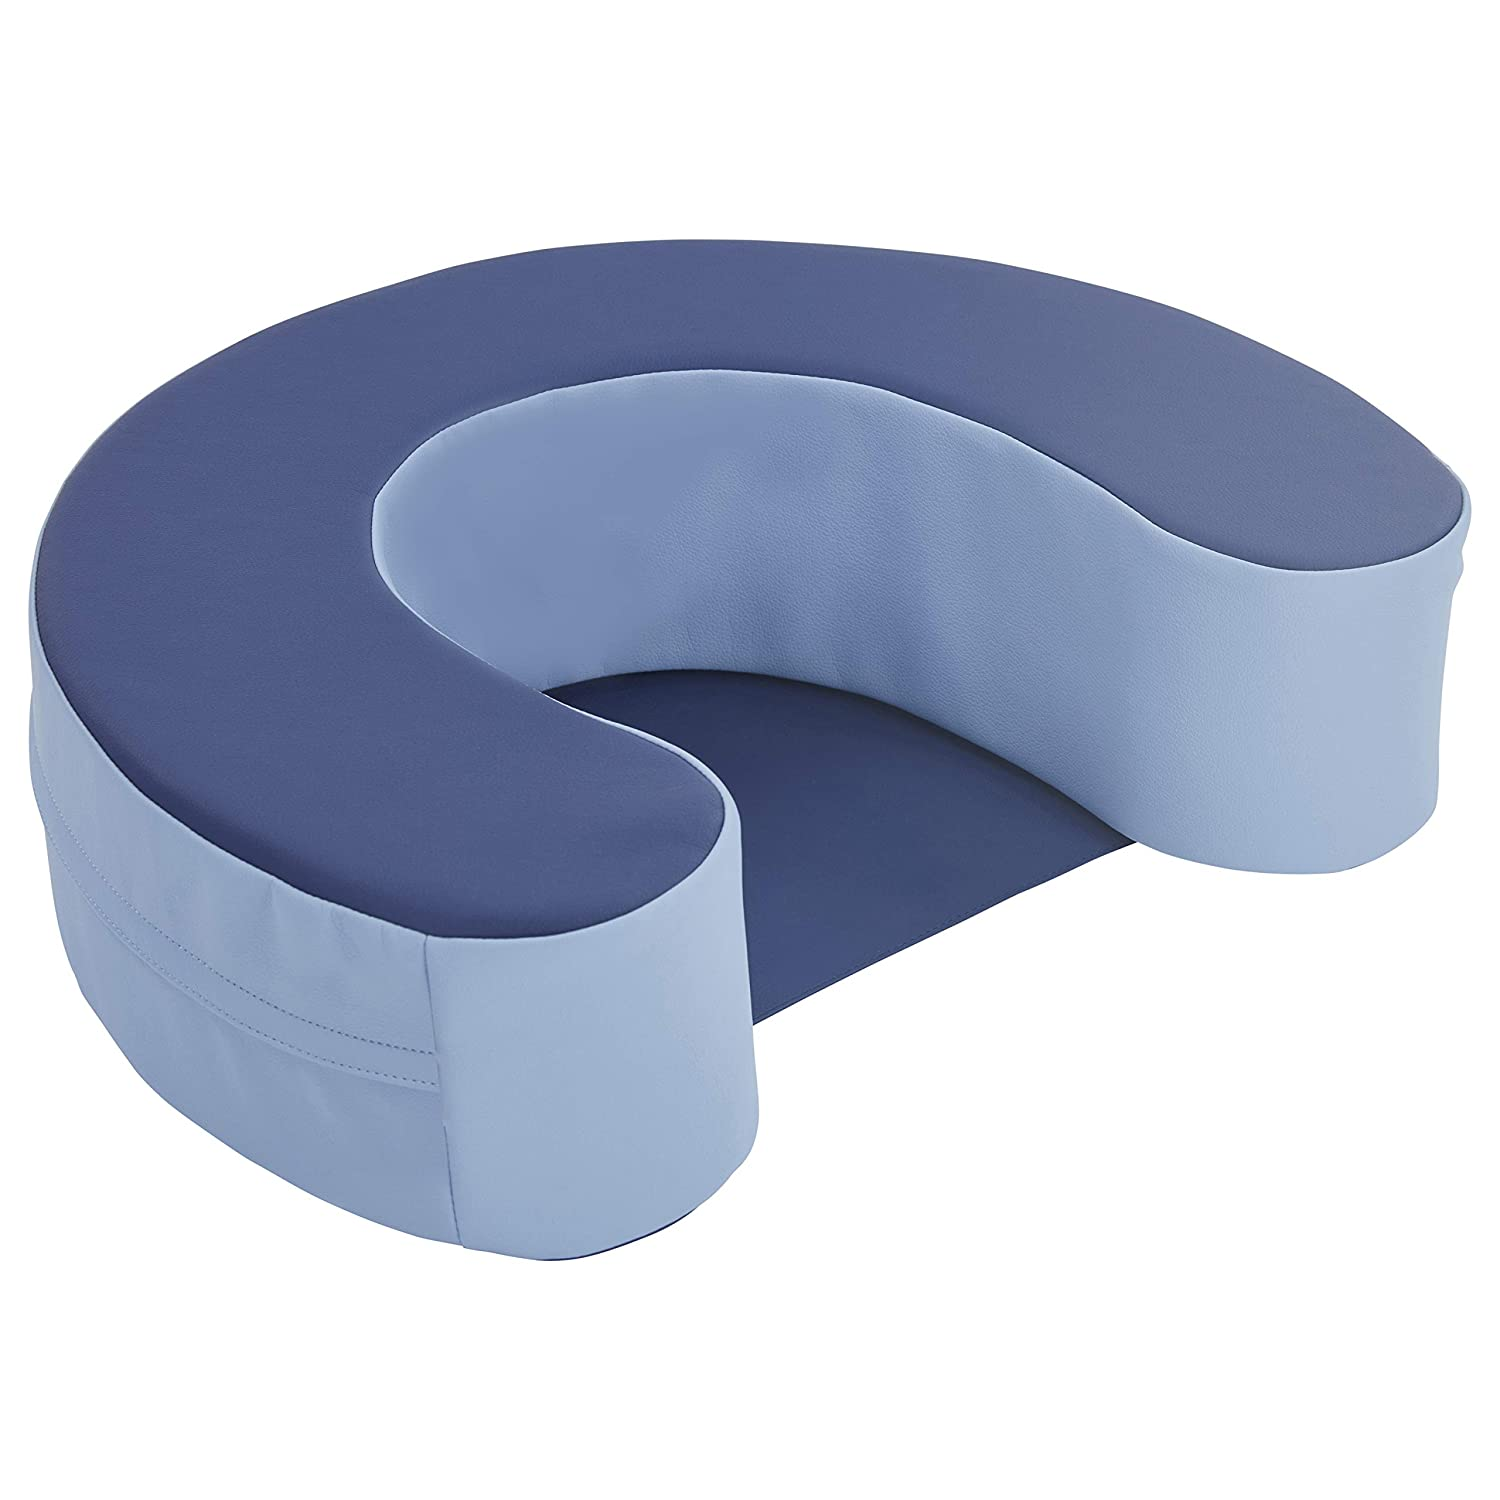 FDP SoftScape Sit and Support Ring for Babies and Infants; Learn to Sit, Balance, Strengthen Muscles, Cushioned Foam Floor Seat with Non-Slip Bottom for Nursey, Playroom, Daycare - Navy/Powder Blue